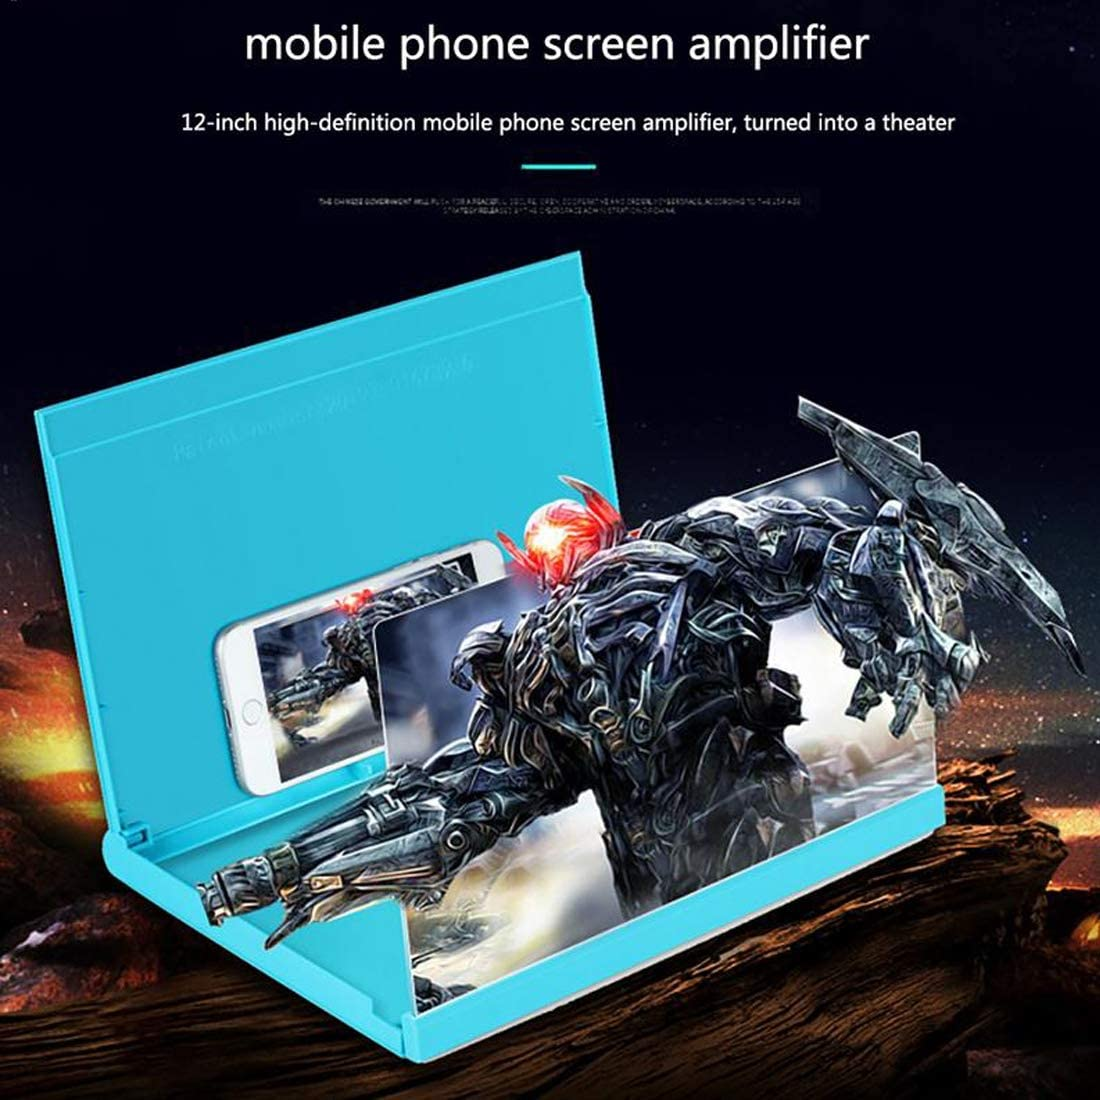 NIULLA 12 Inch Universal Foldable Mobile Phone Screen Expander Creative Movie Display Video Expander 3D HD Phone Screen Amplifier Travel Stand,Blue